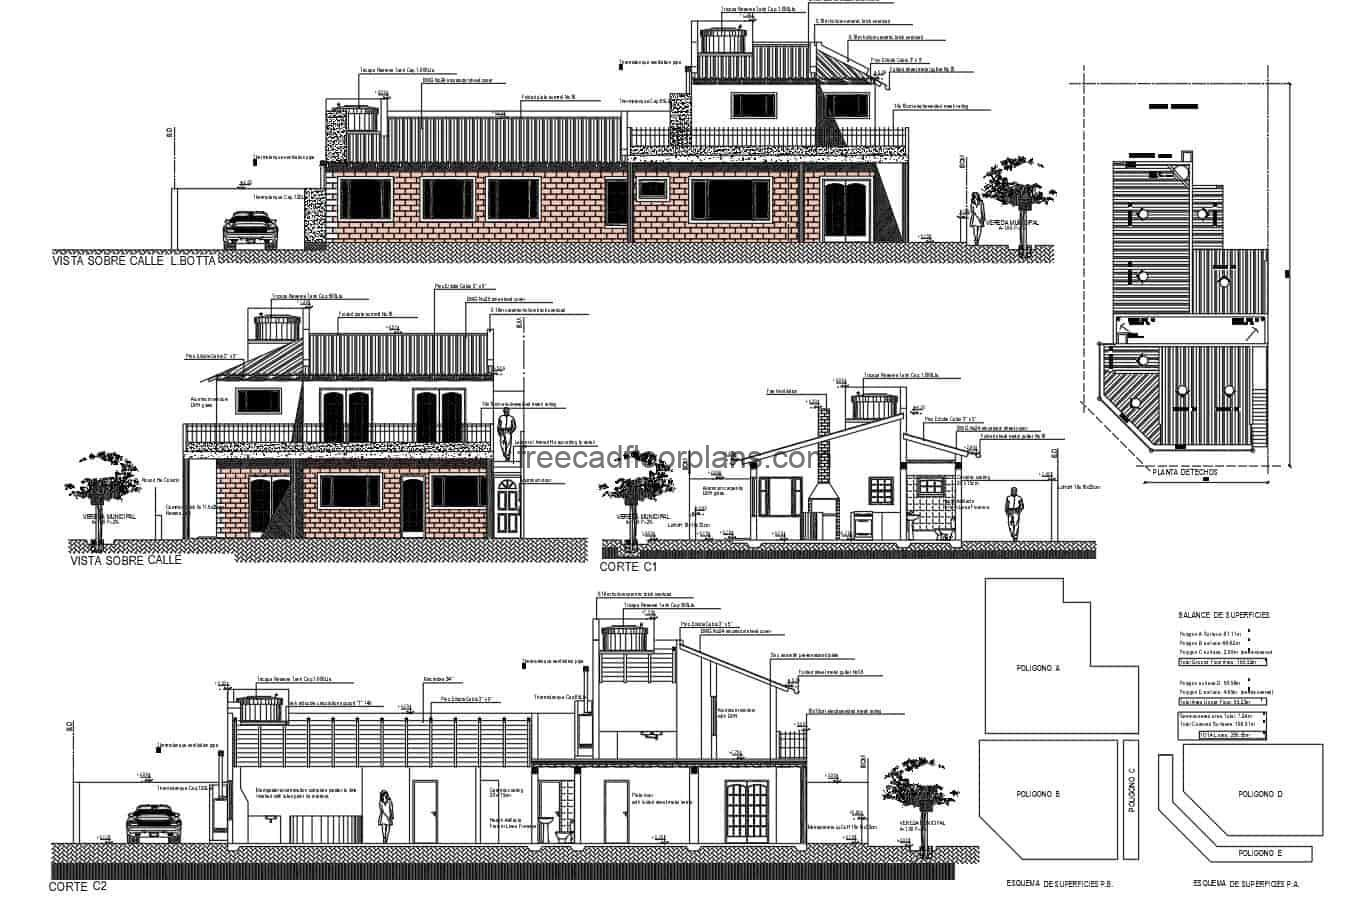 Building drawn in autocad of house with commercial premises of two levels, file for free download, architectural plans, sizing, elevations and technical construction plans.